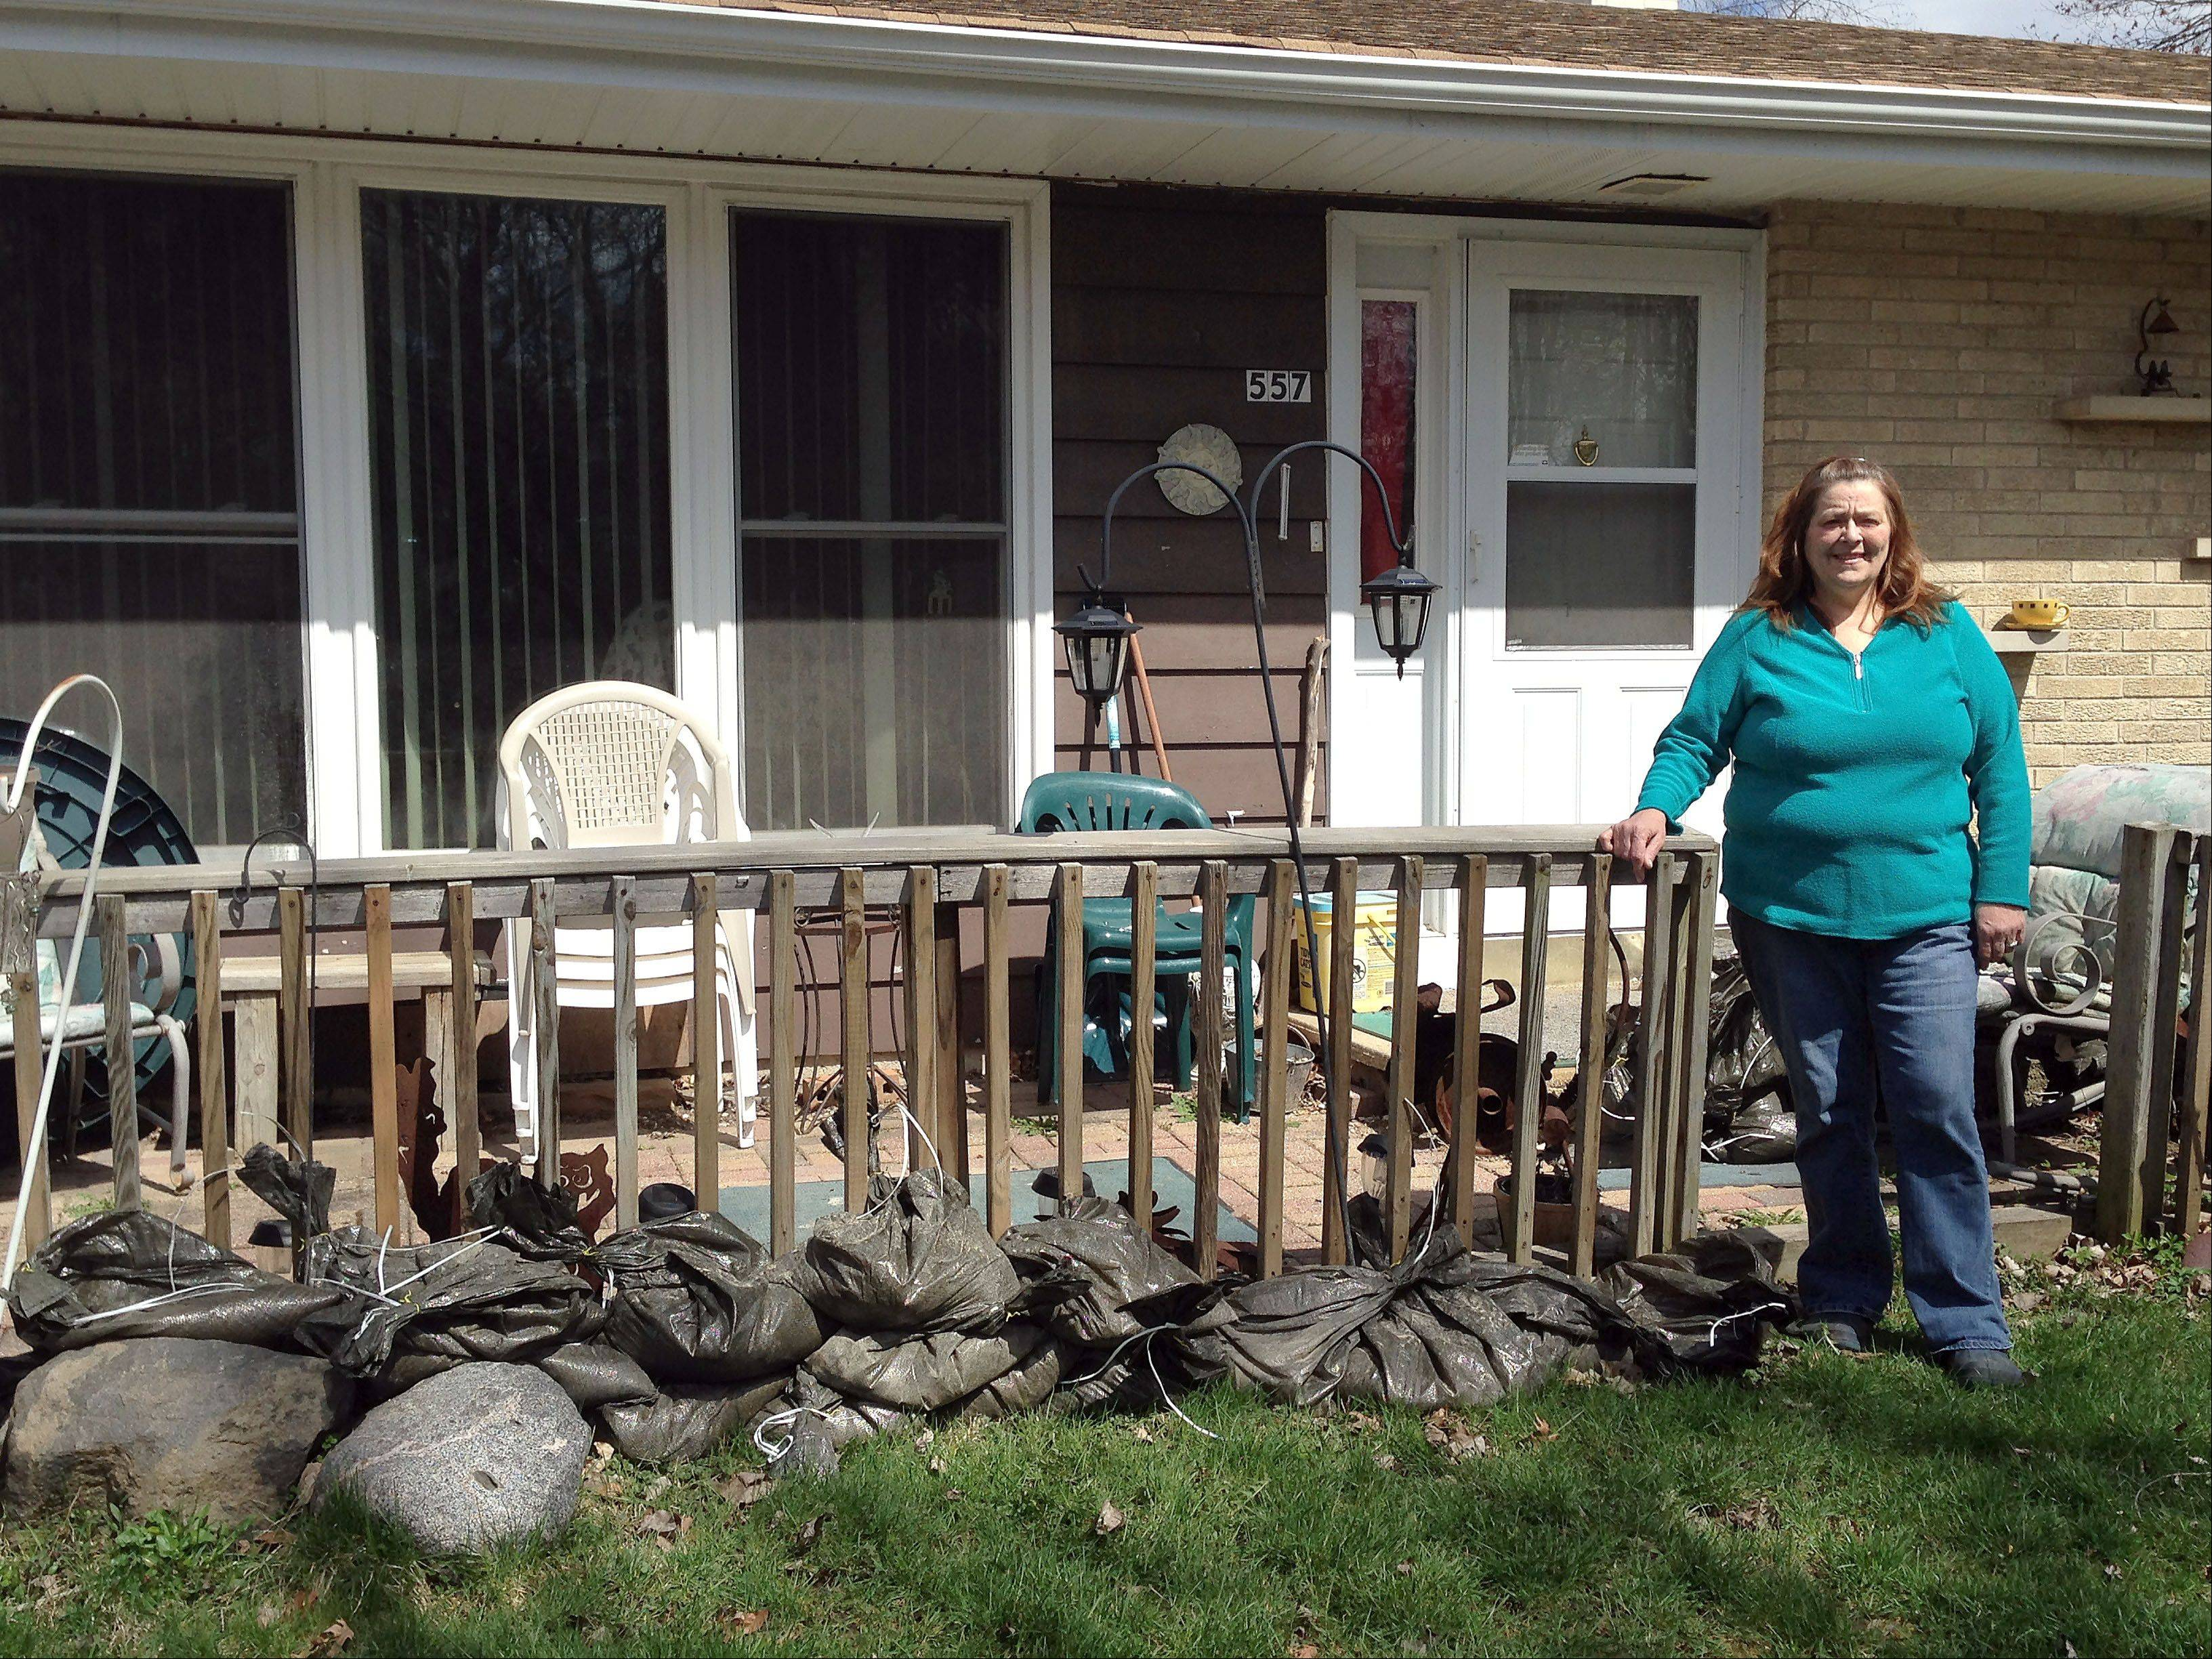 Spring and fall are always stressful times for Lorie Granderson, who lives in her childhood home on Willard Avenue, across the street from Willow Creek in Elgin. Last week's storms were the second worst in memory, with the water stopping 7 to 8 feet from her garage.